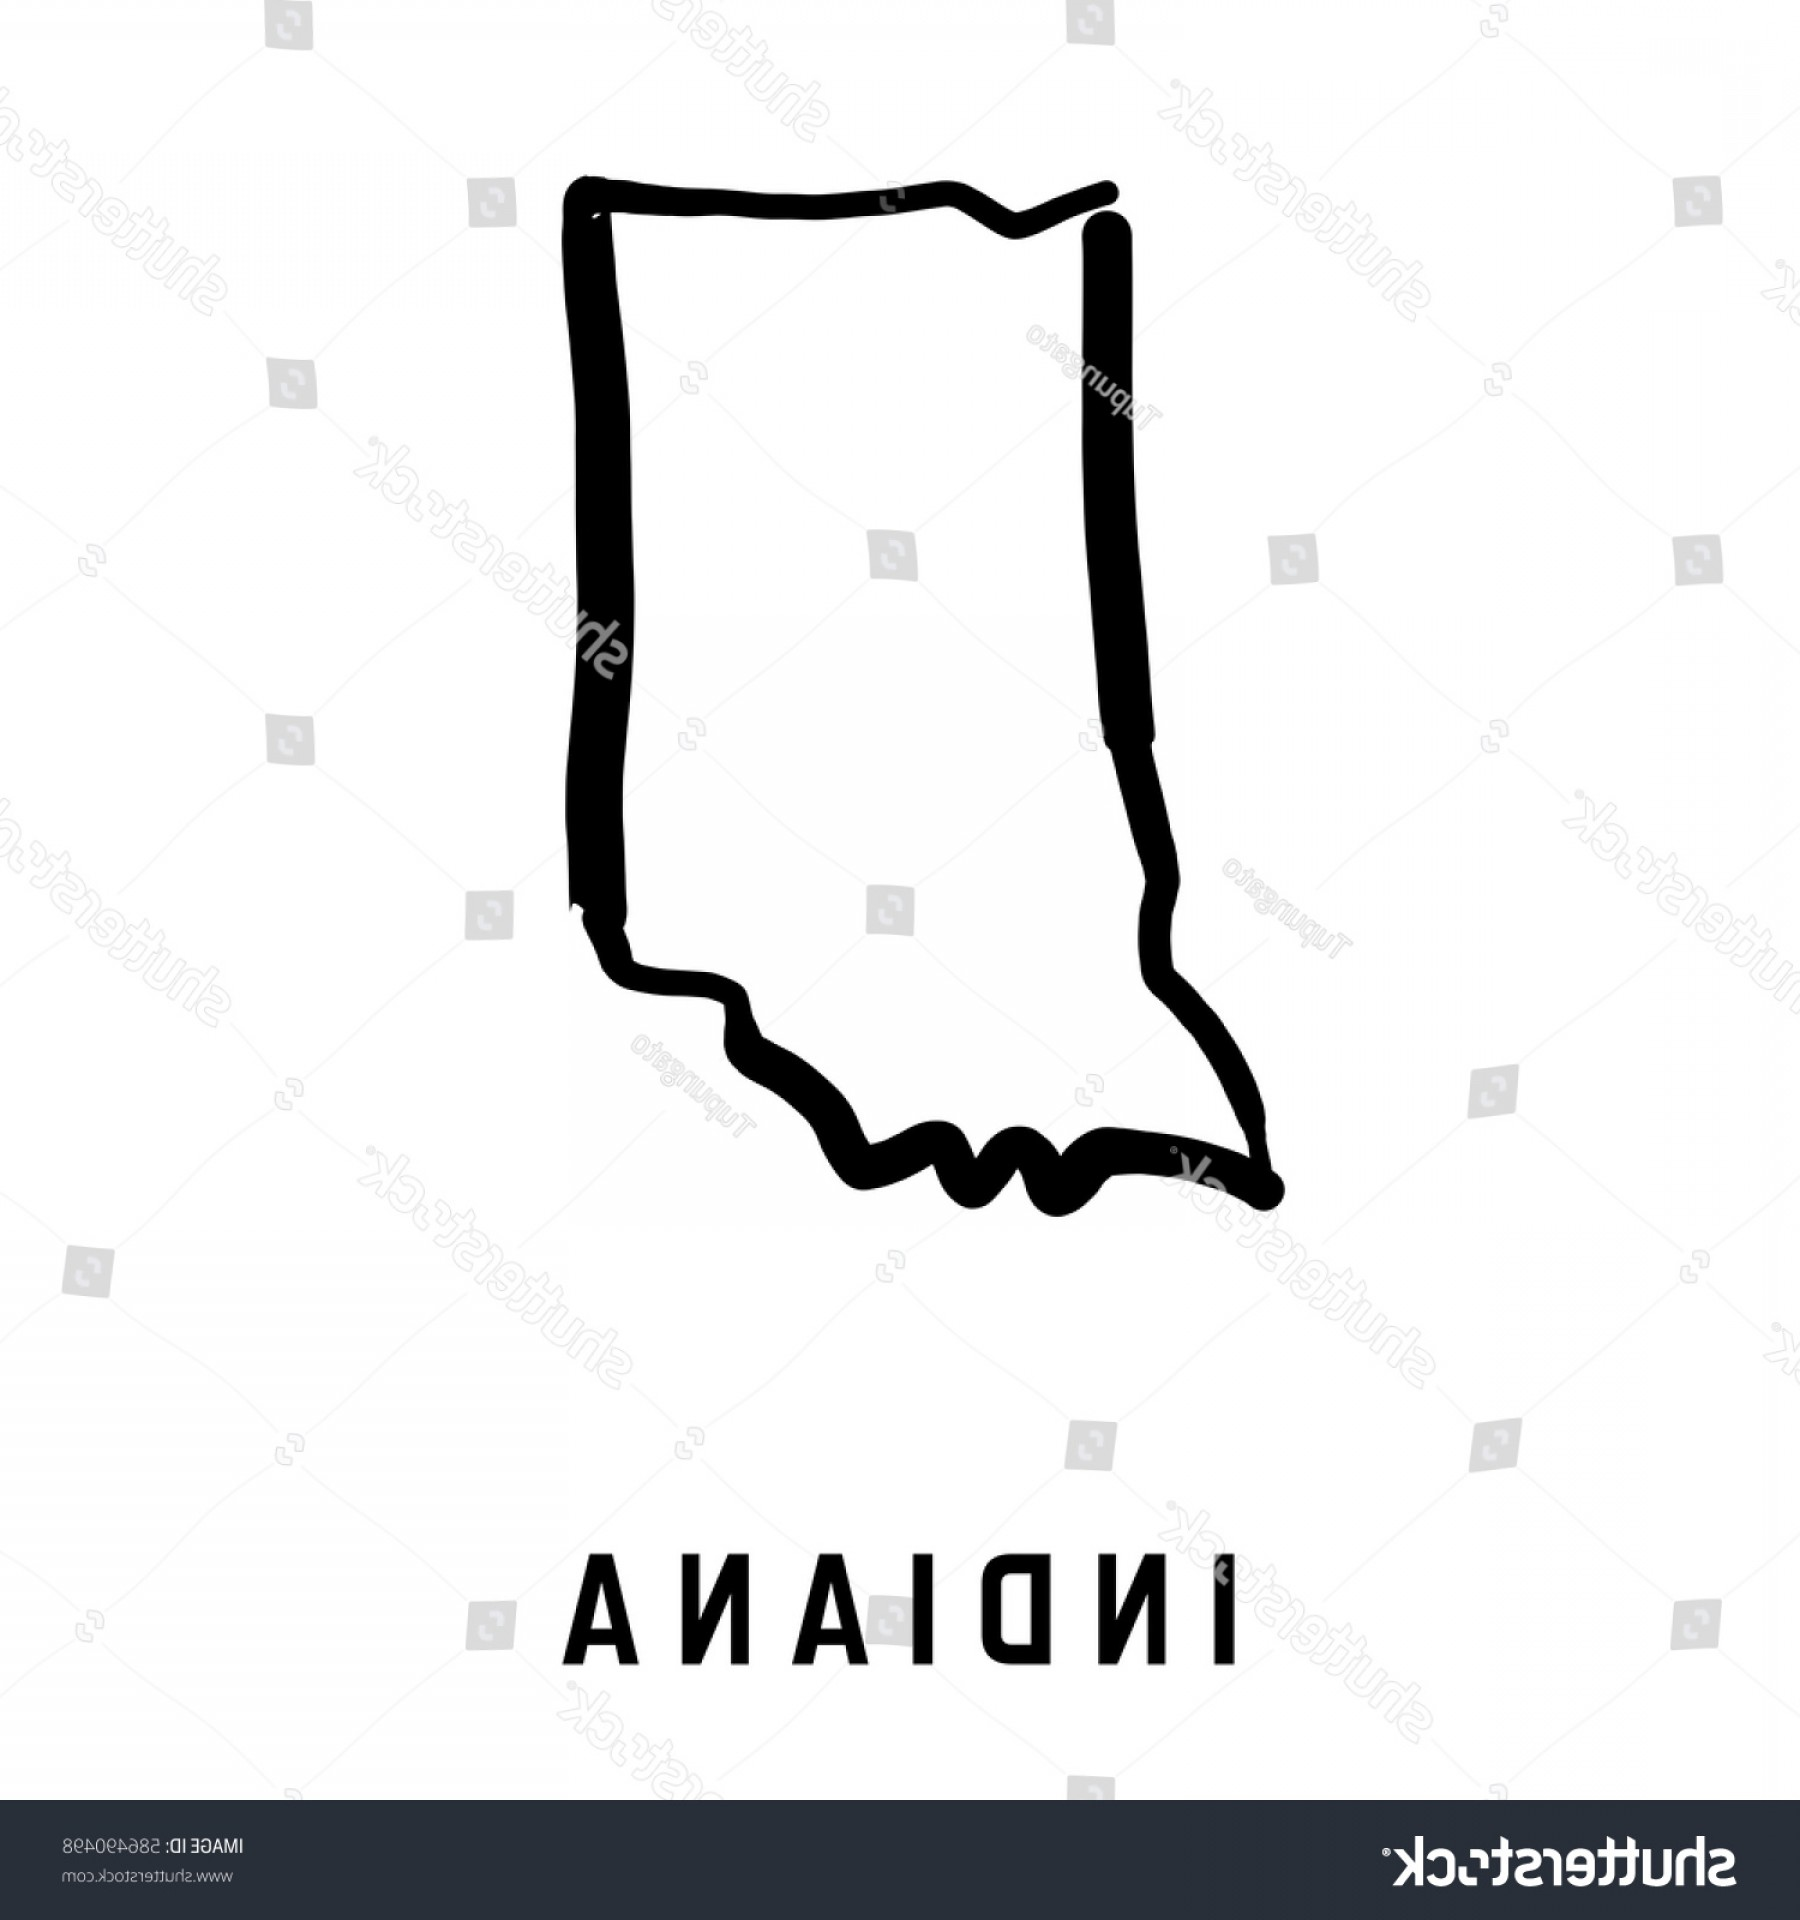 Arizona State Outline Vector: Indiana State Map Outline Smooth Simplified